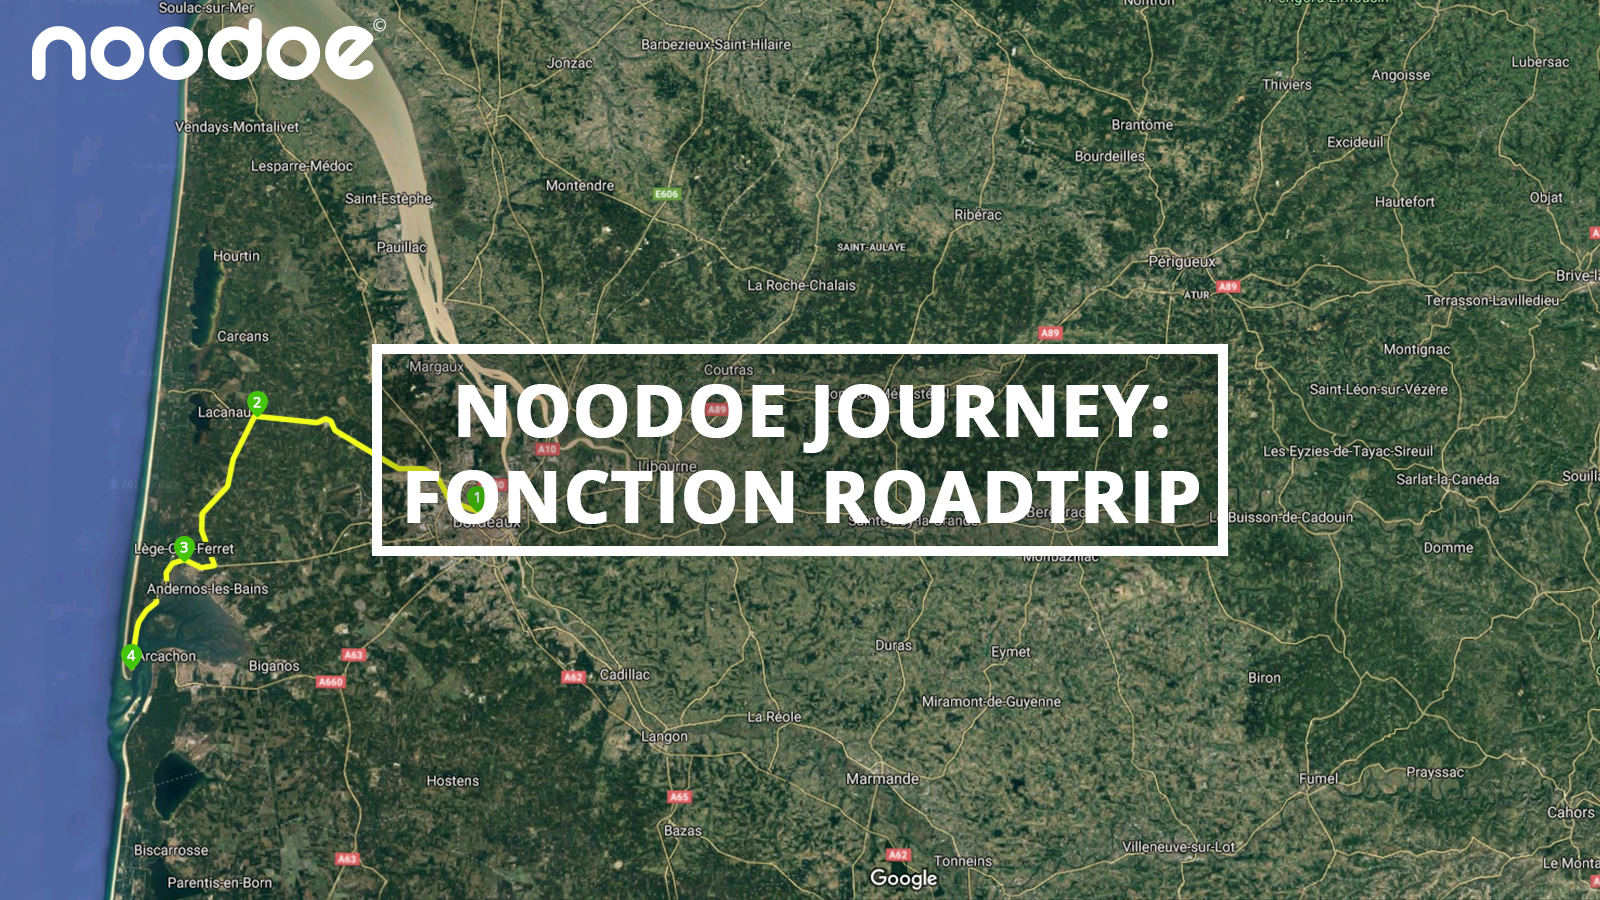 guide-noodoe-journey-featured